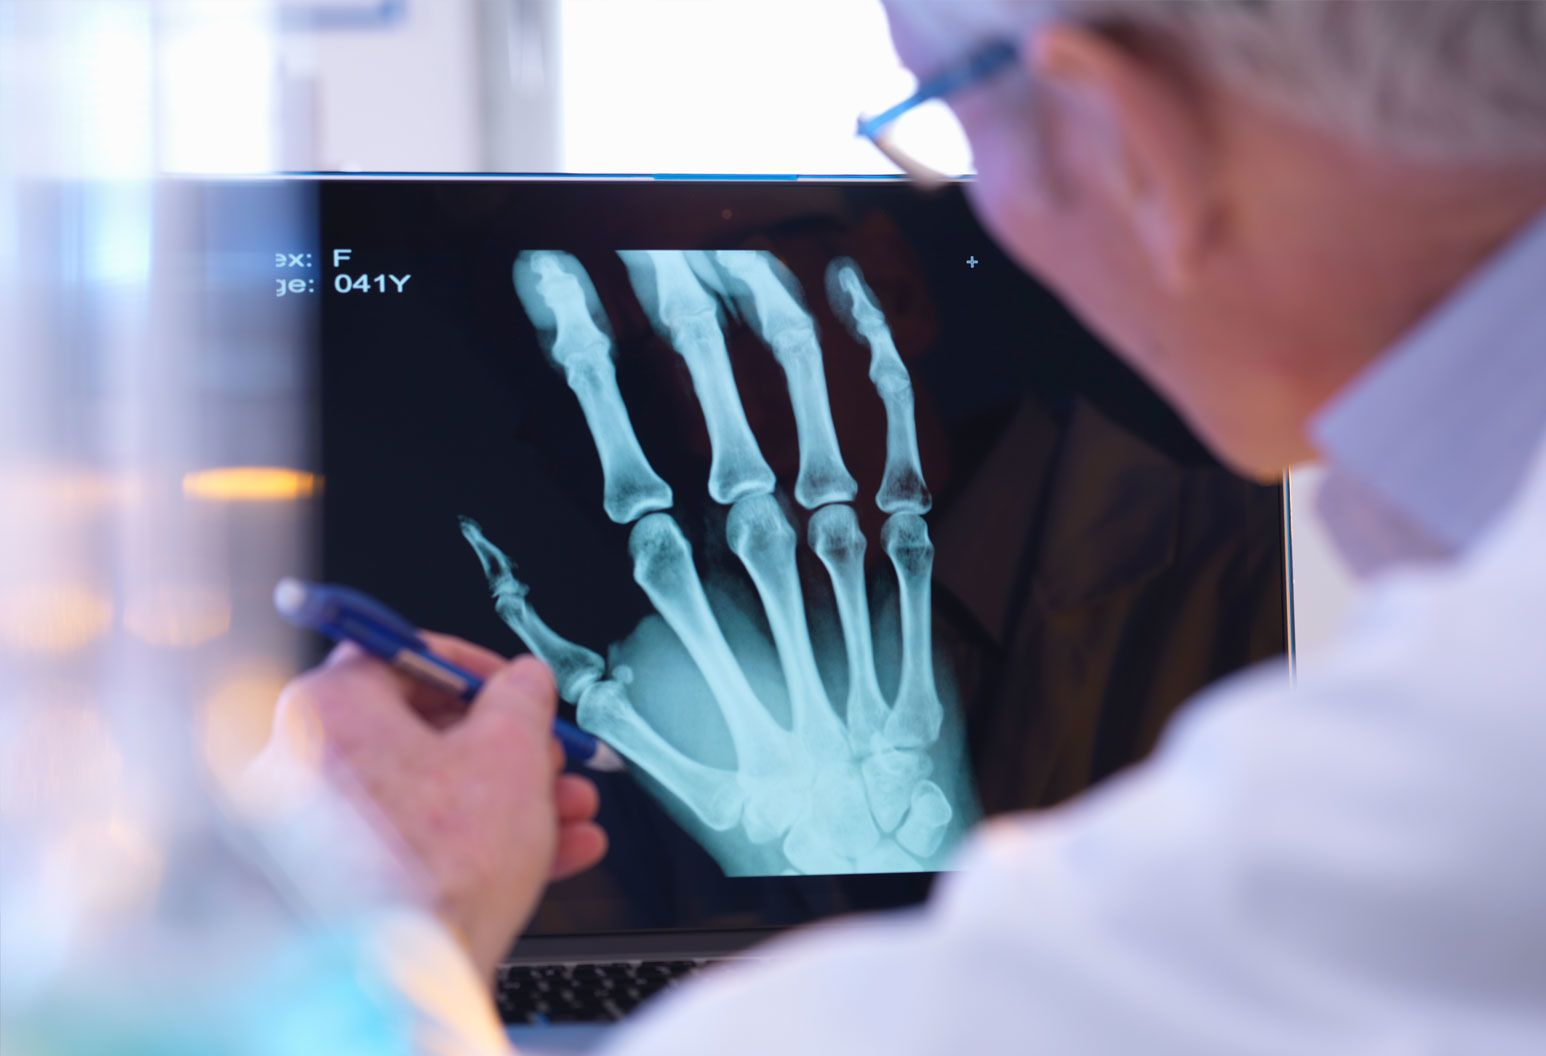 Doctor looking at an x-ray of the hand and wrist